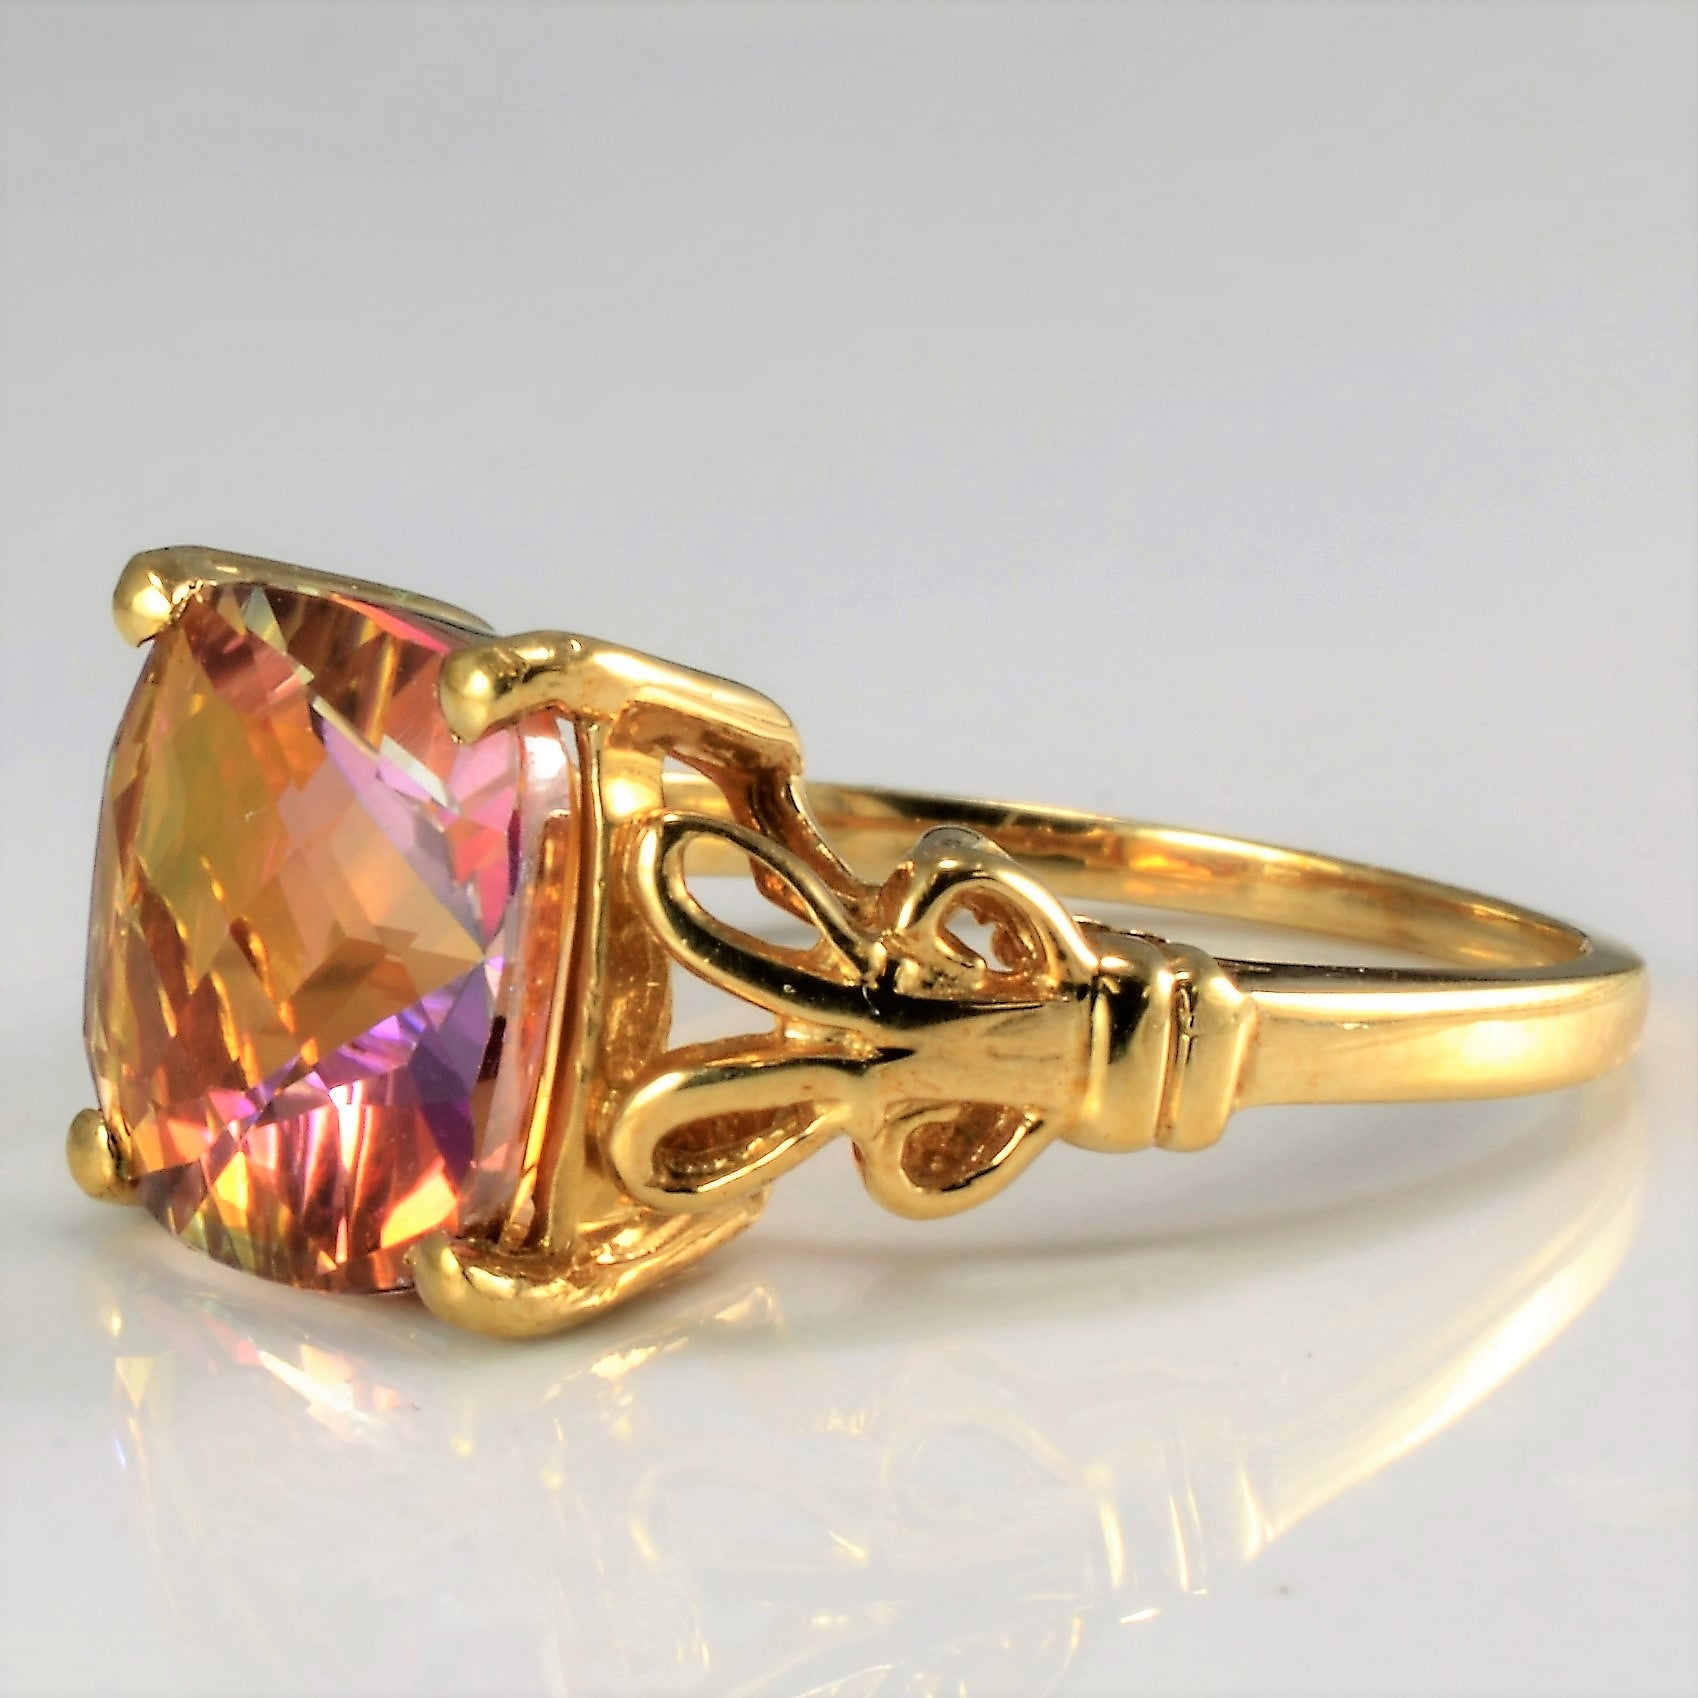 Solitaire Mystic Topaz Ring | SZ 6.75 |